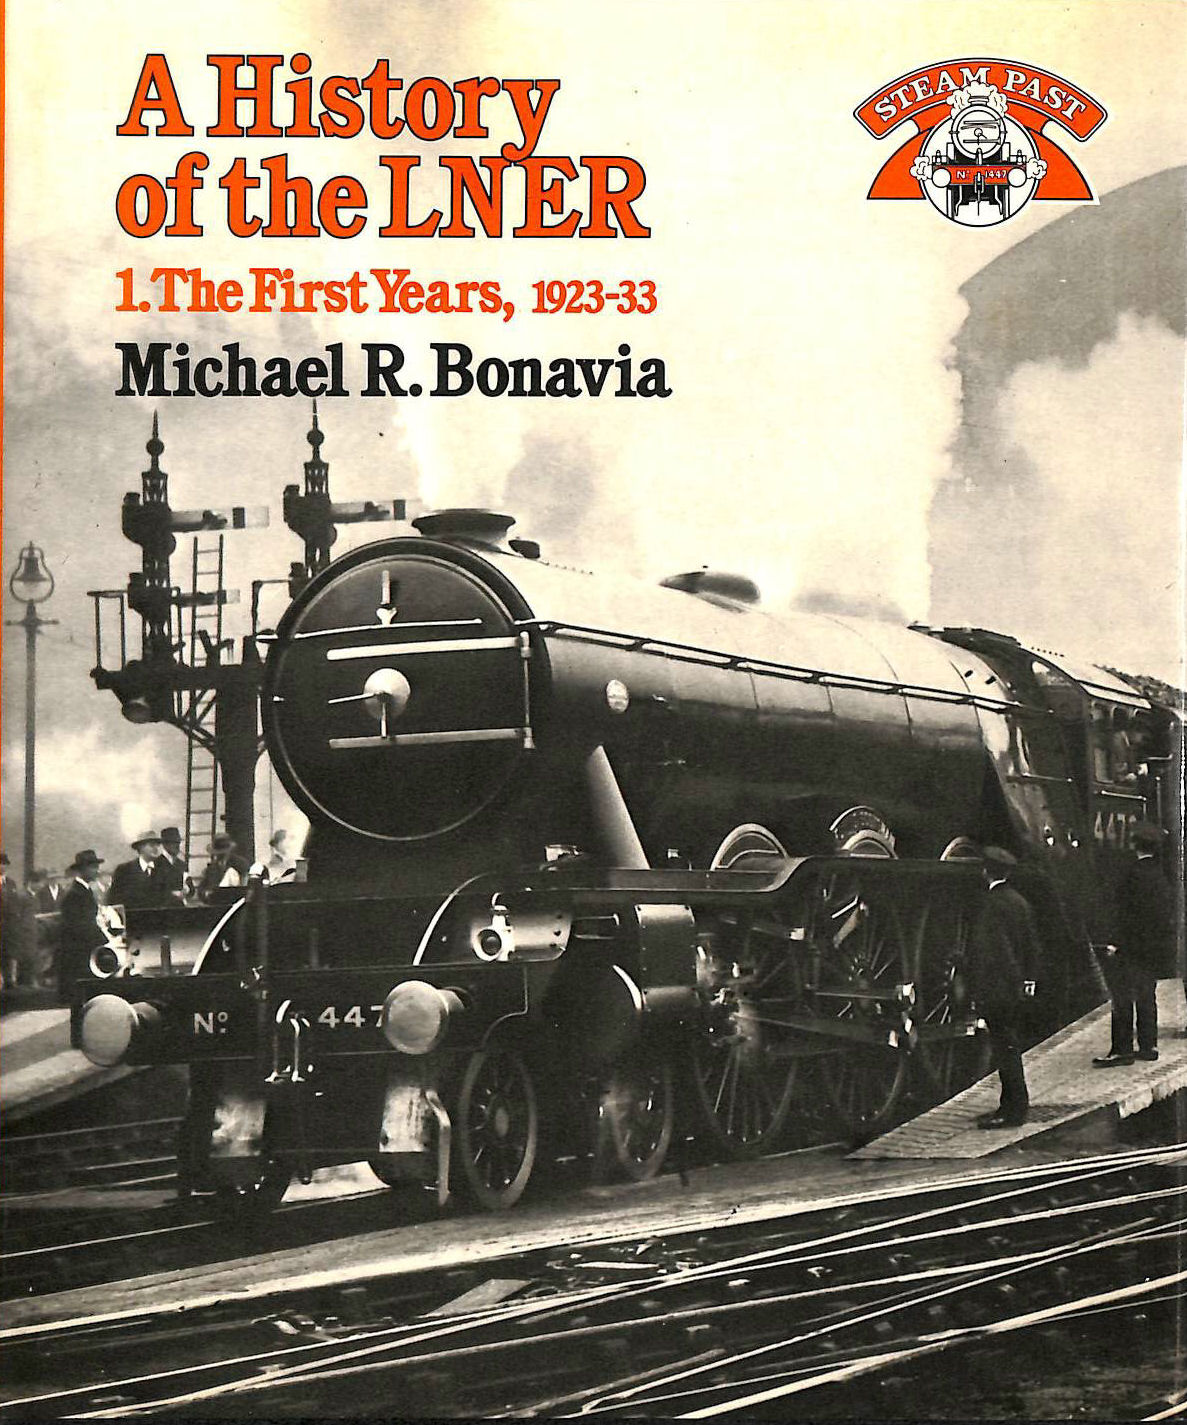 Image for A History of the LNER: 1 The Early Years, 1923-1933 (Steam Past Series): The First Years, 1923-33